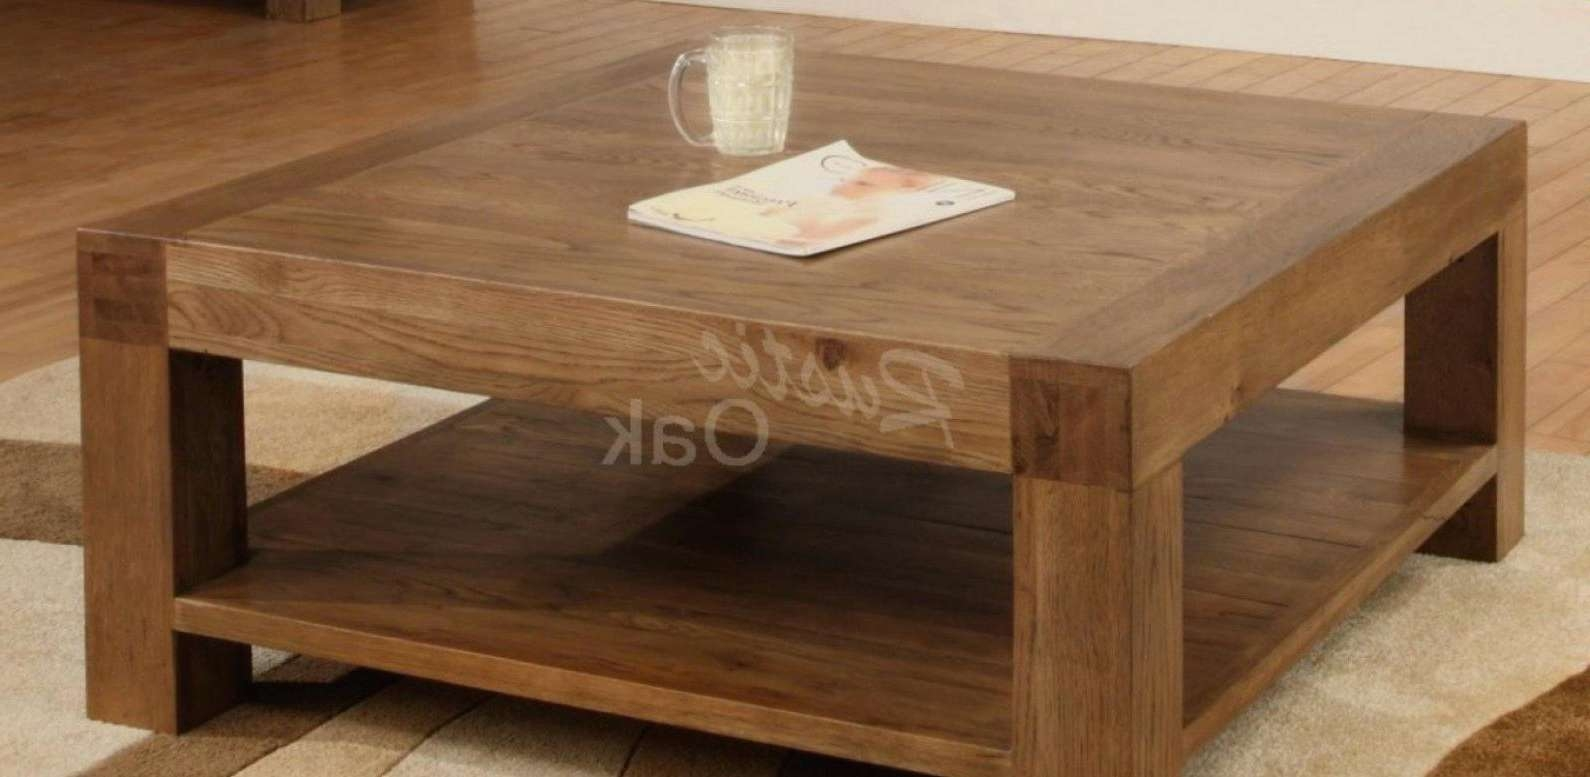 Coffee Tables : Oval Wood Coffee Table Elegant Ideas Of Metal With Regard To Most Recent Chunky Coffee Tables (View 16 of 20)